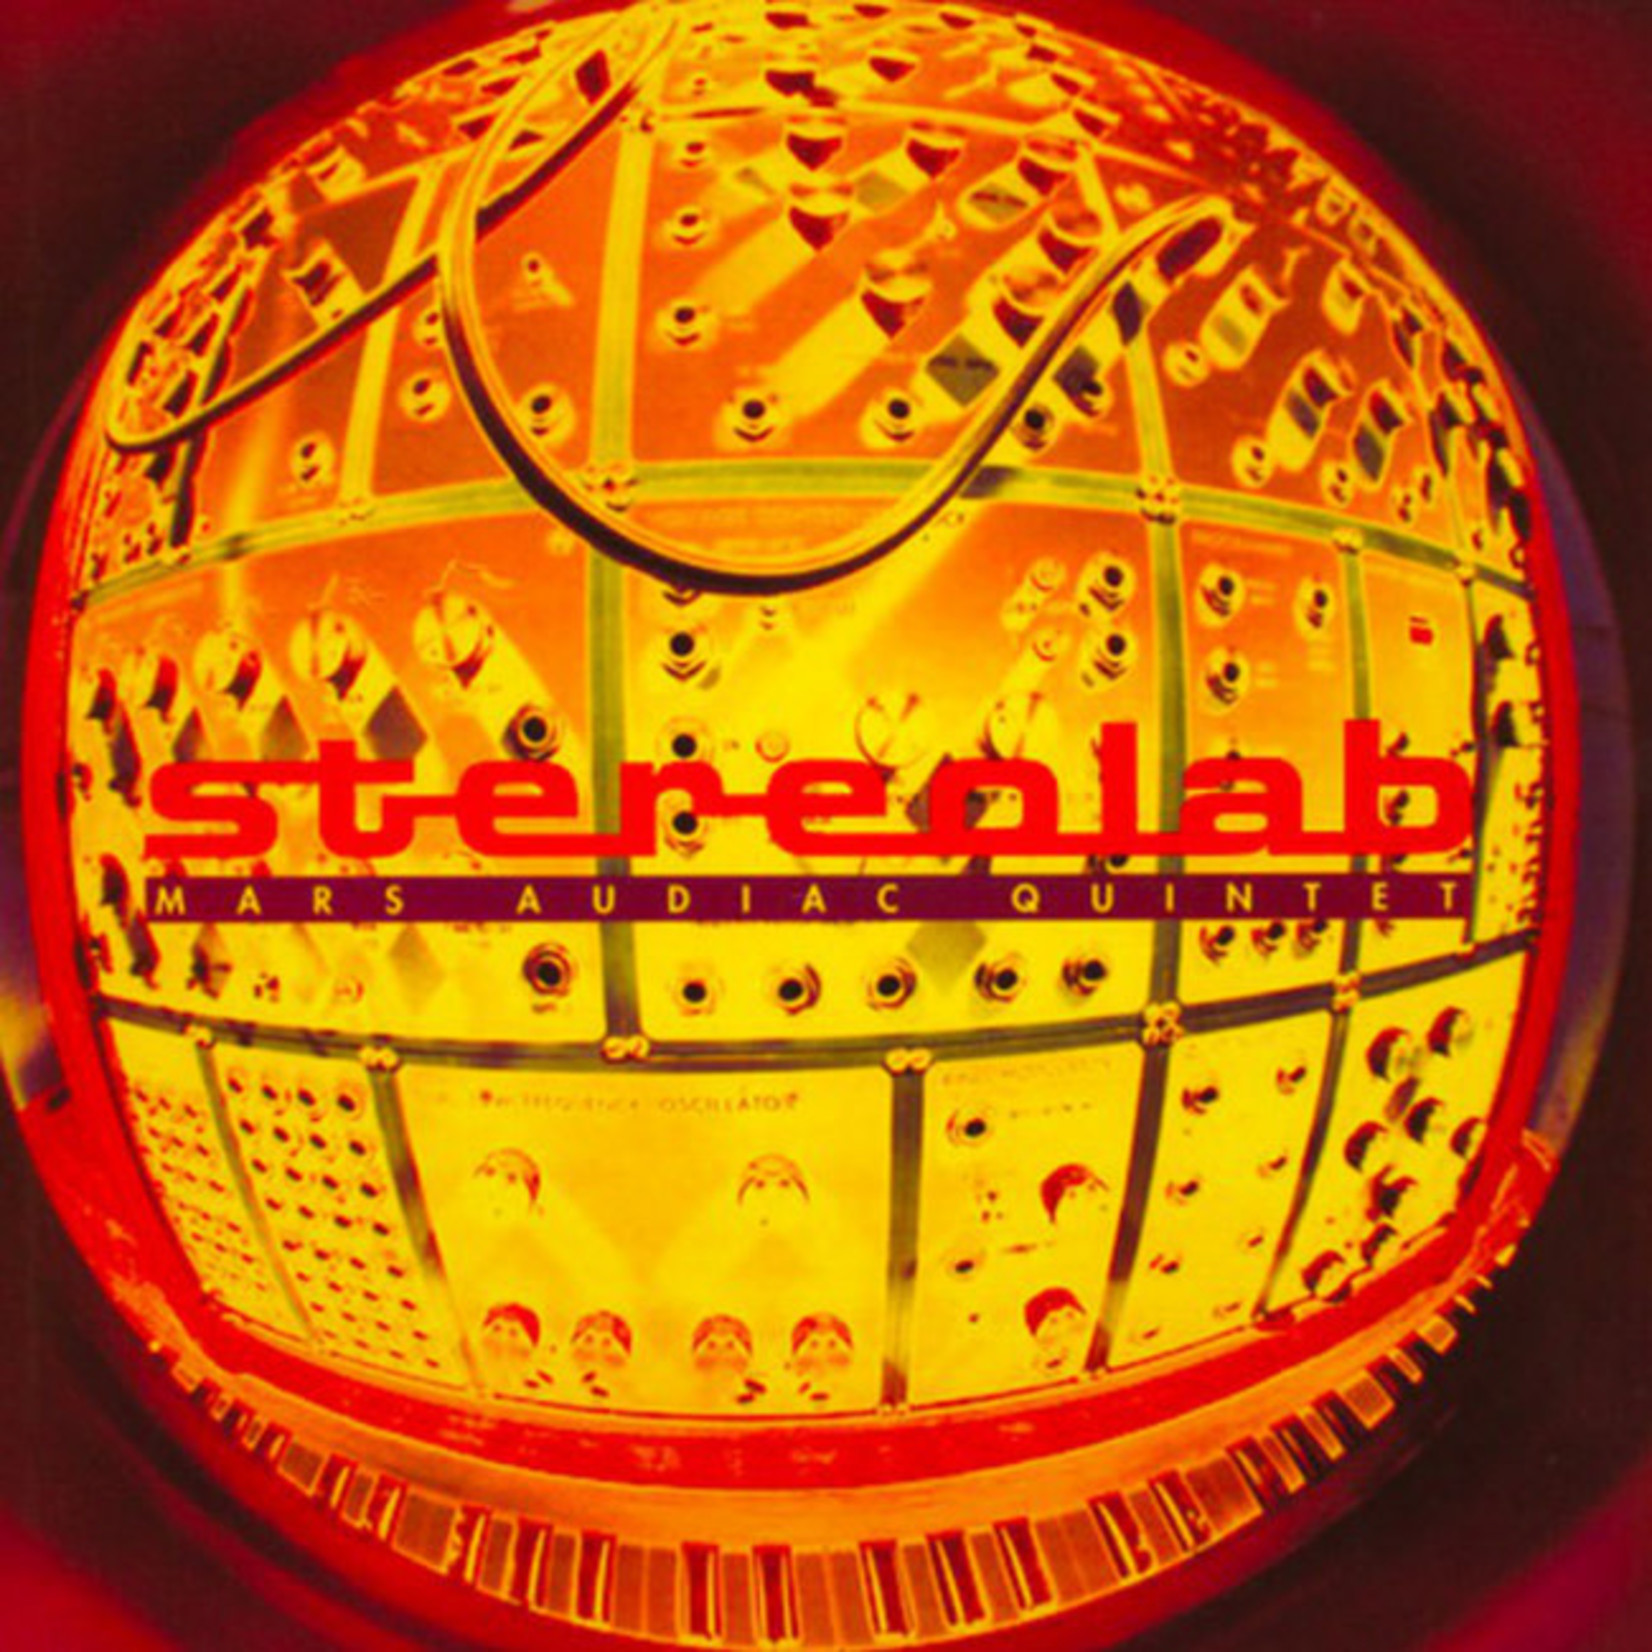 [New] Stereolab: Mars Audiac Quintet (3LP, Expanded Ed.)